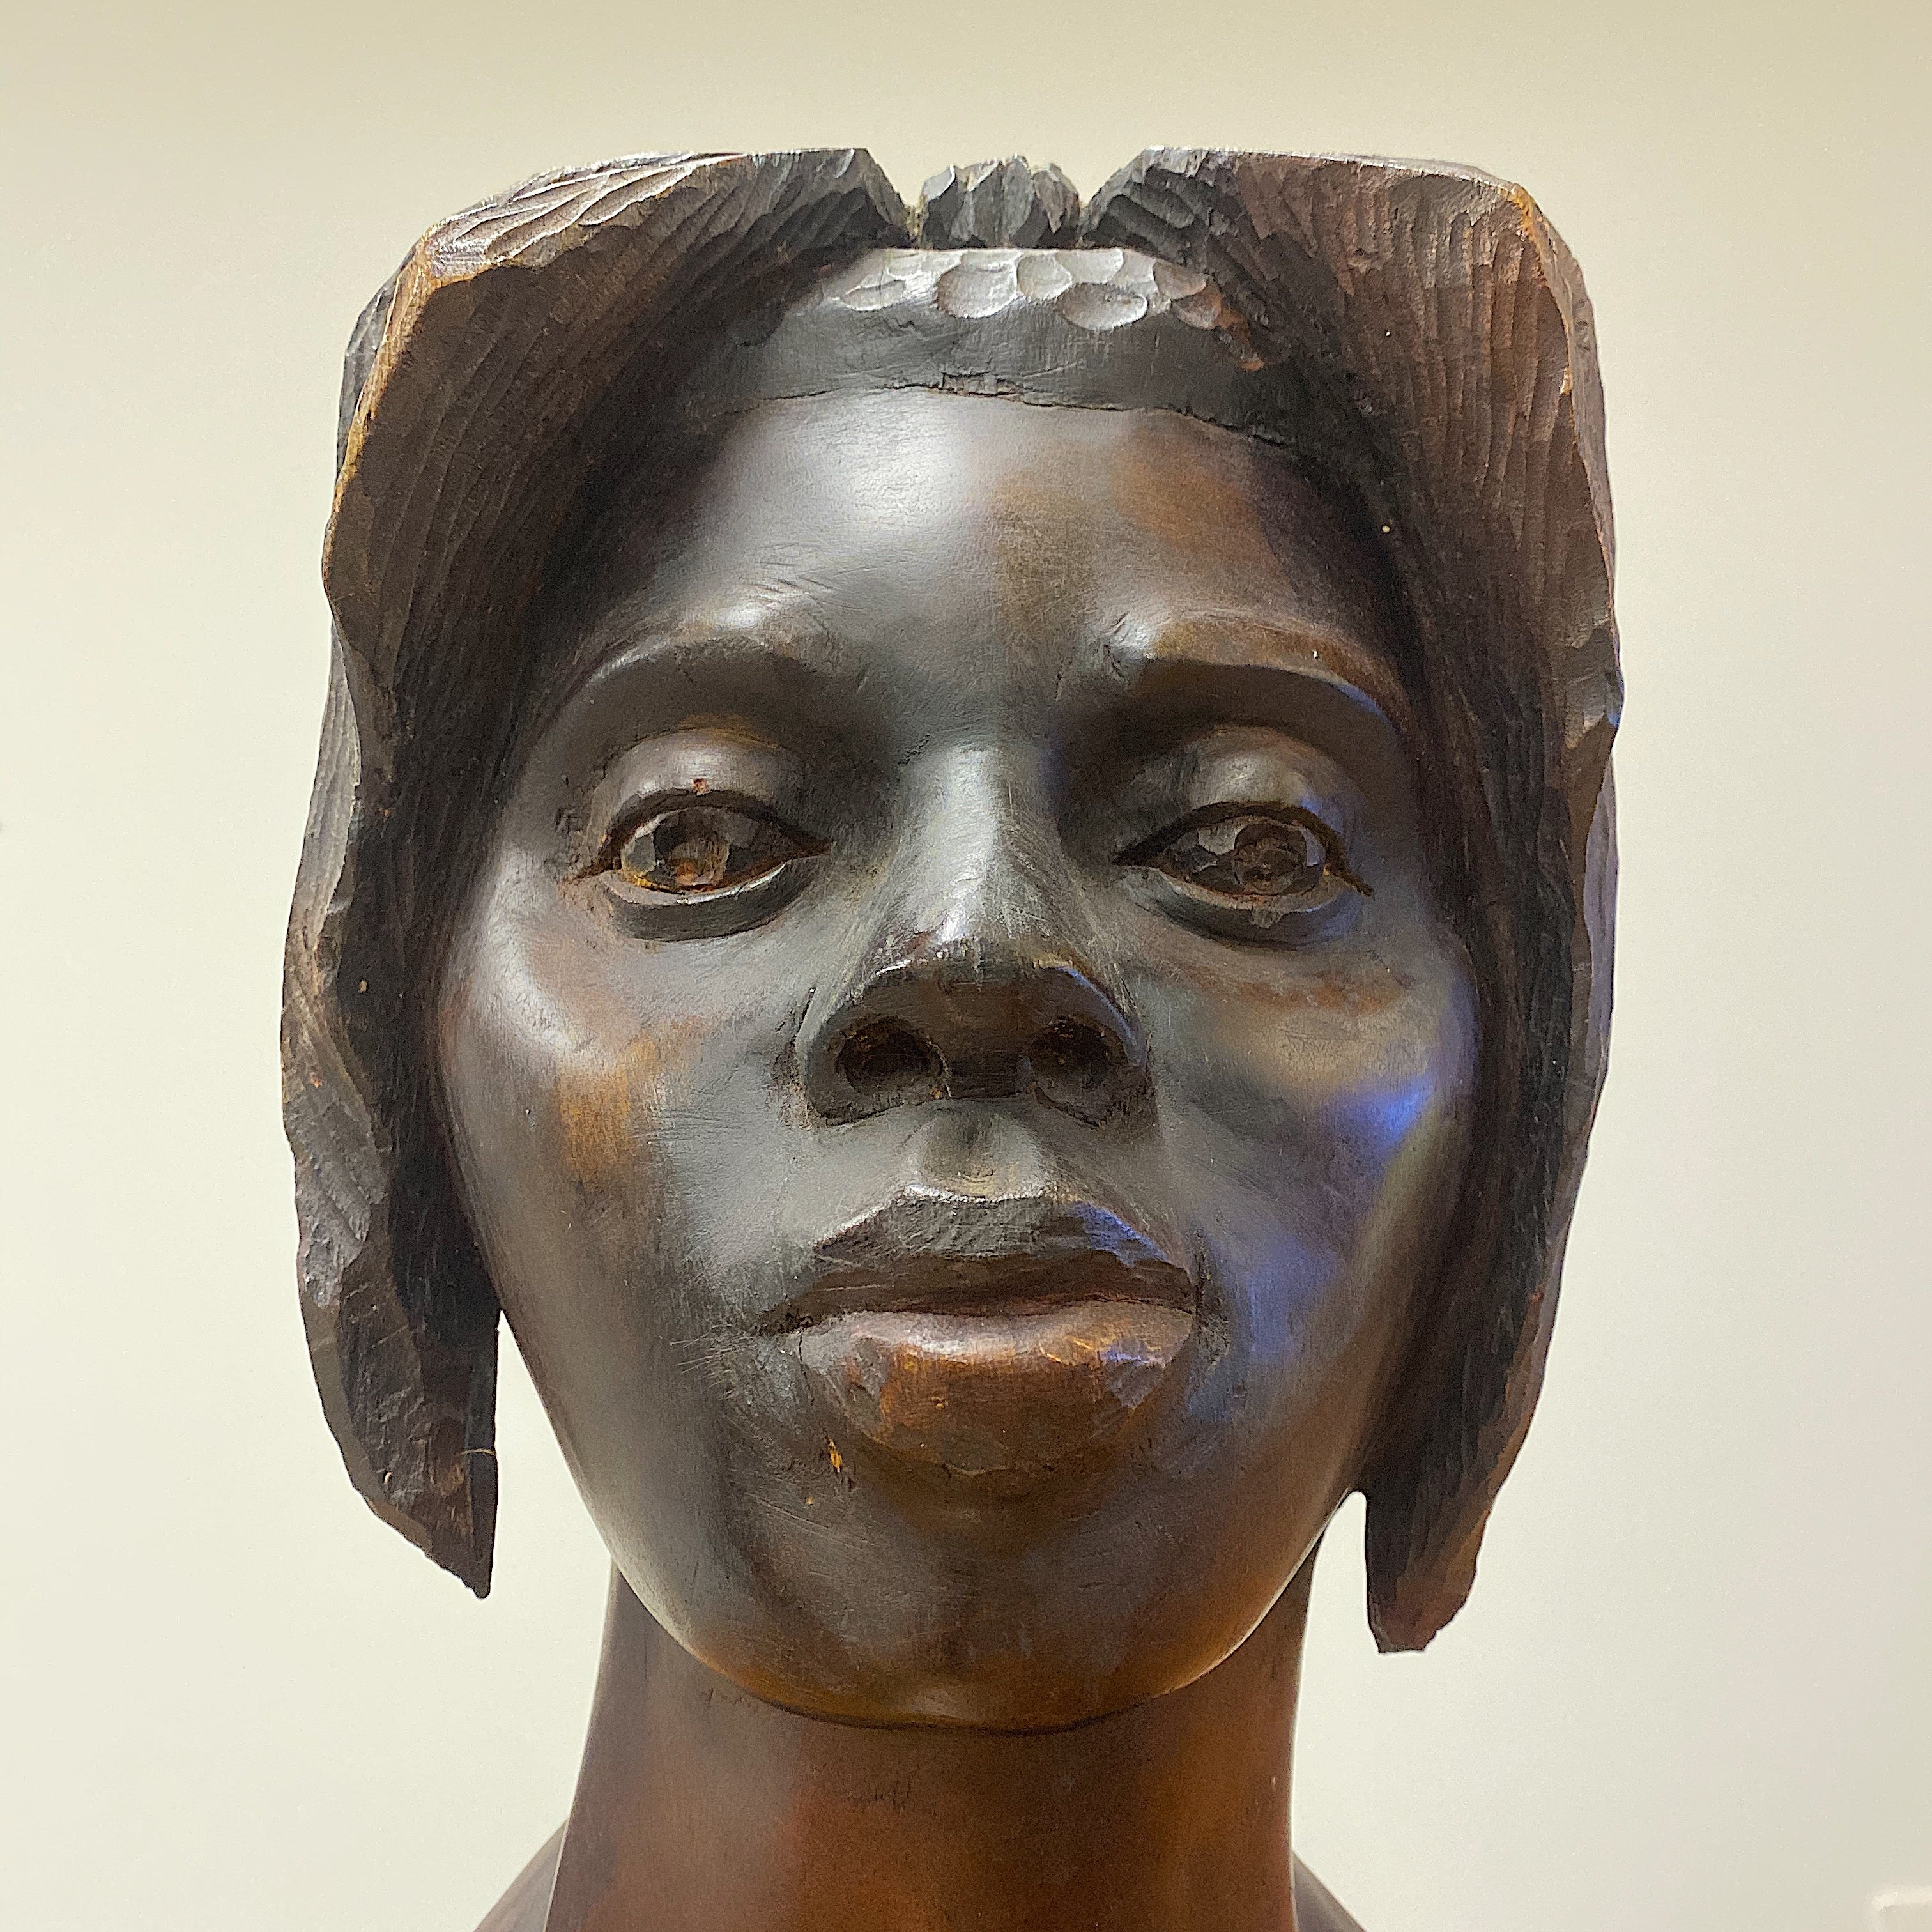 Face of Haitian Wood Sculpture of Female Bust Signed Maurice - 1950s. - Vintage Art Sculptures - Artworks from Haiti - Rare Artwork - Mid Century